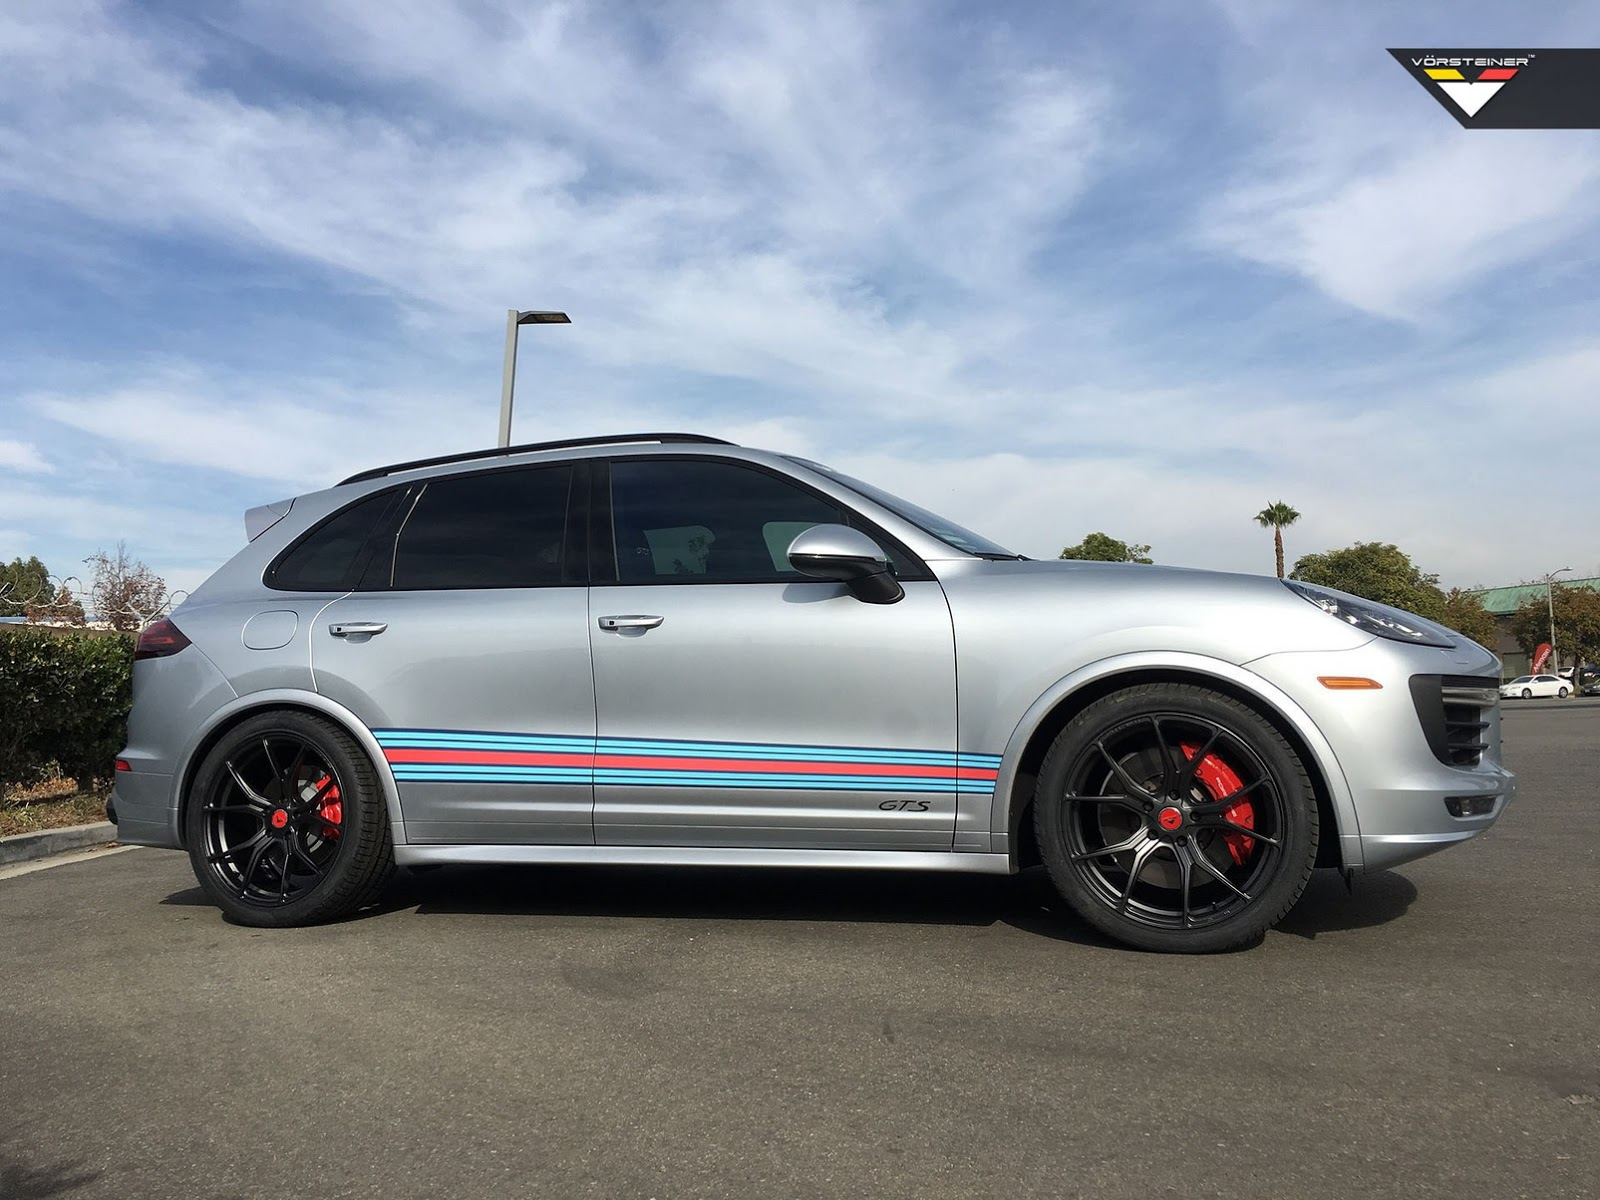 Vorsteiners Company Car Is A Martini Livered Cayenne Gts Carscoops